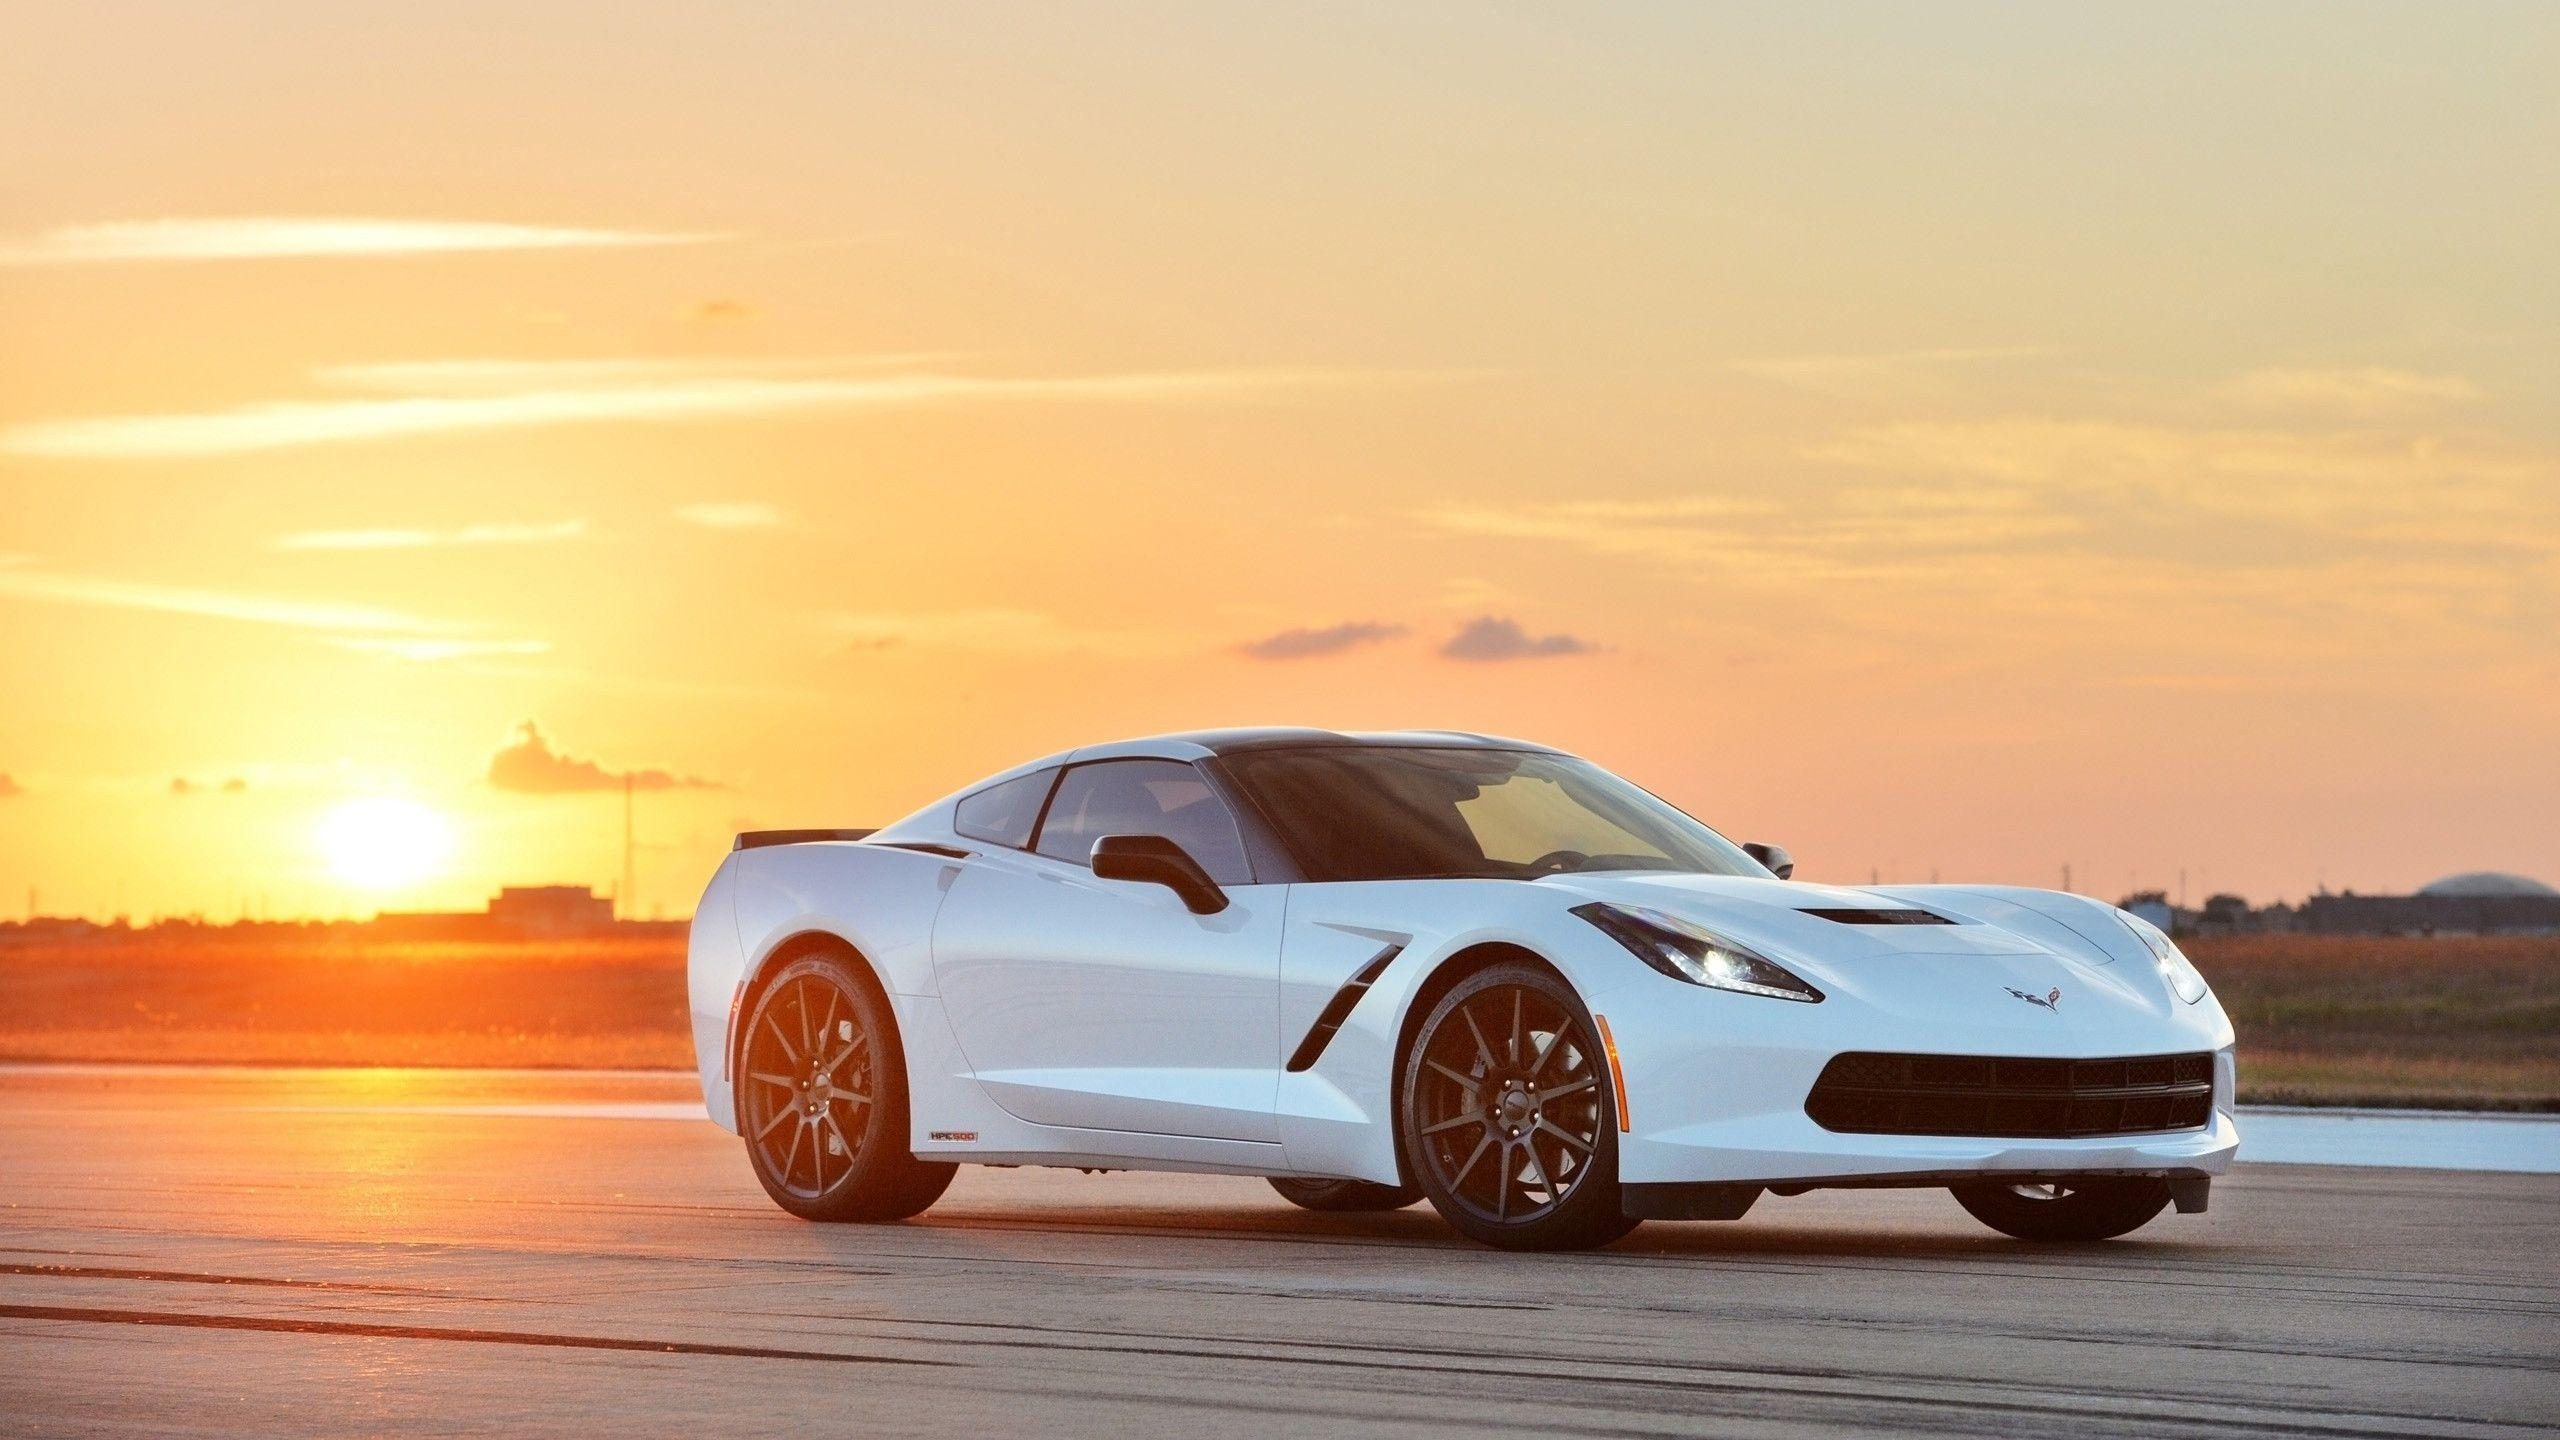 2015 z06 wallpaper - photo #31